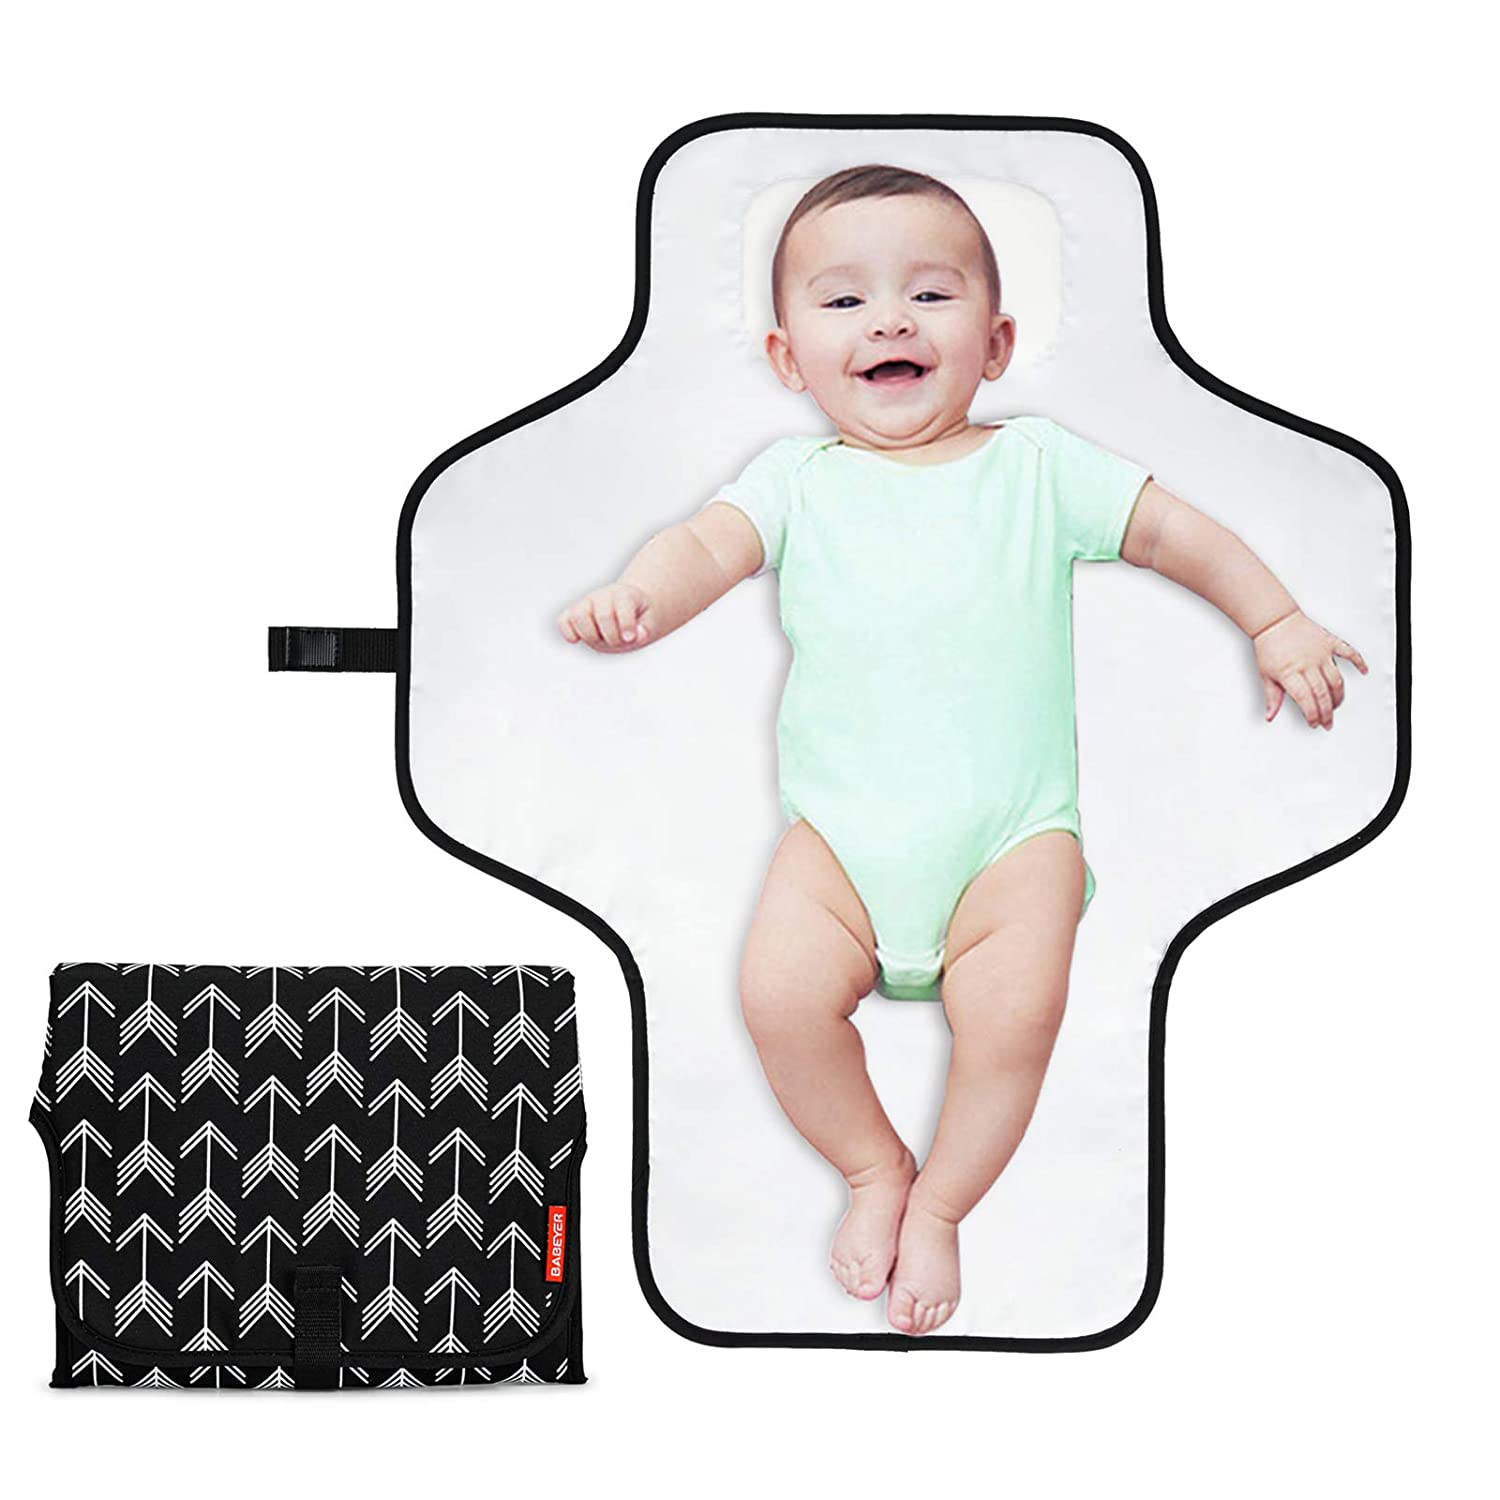 BABEYER Portable Changing Pad,Large Waterproof Diaper Changing Mat, Travel Mat Station for Toddlers Infants & Newborns